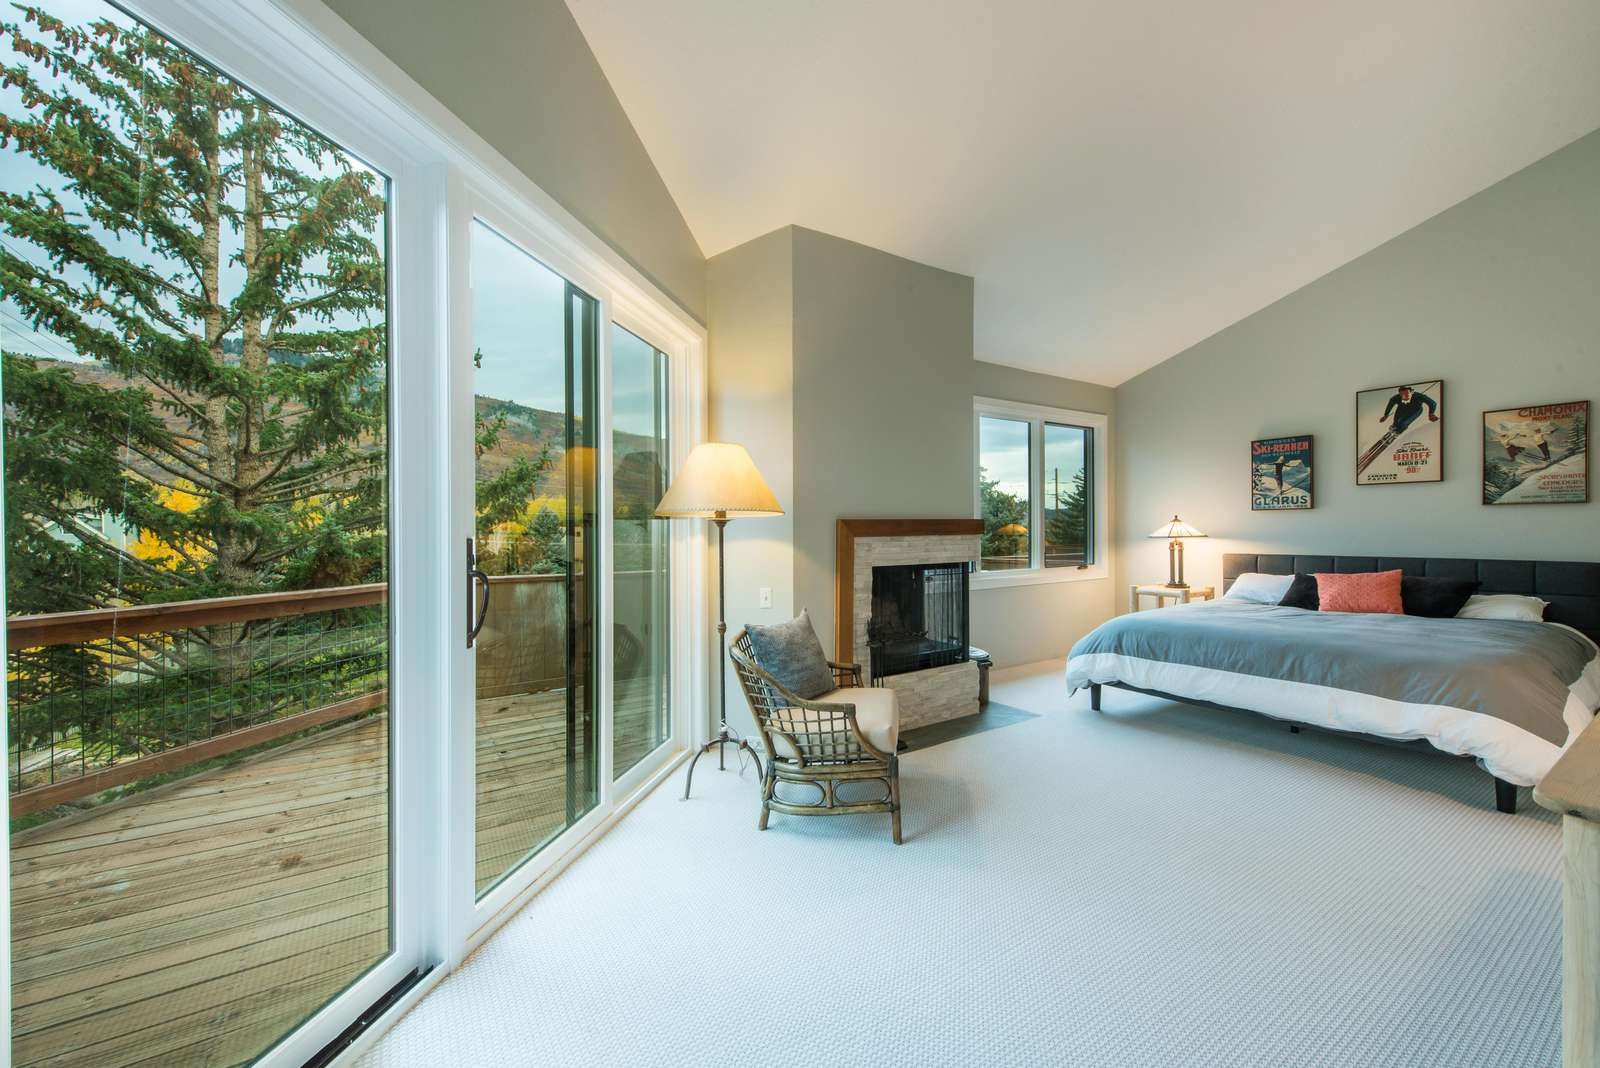 Master bedroom has a deck and stunning mountain views